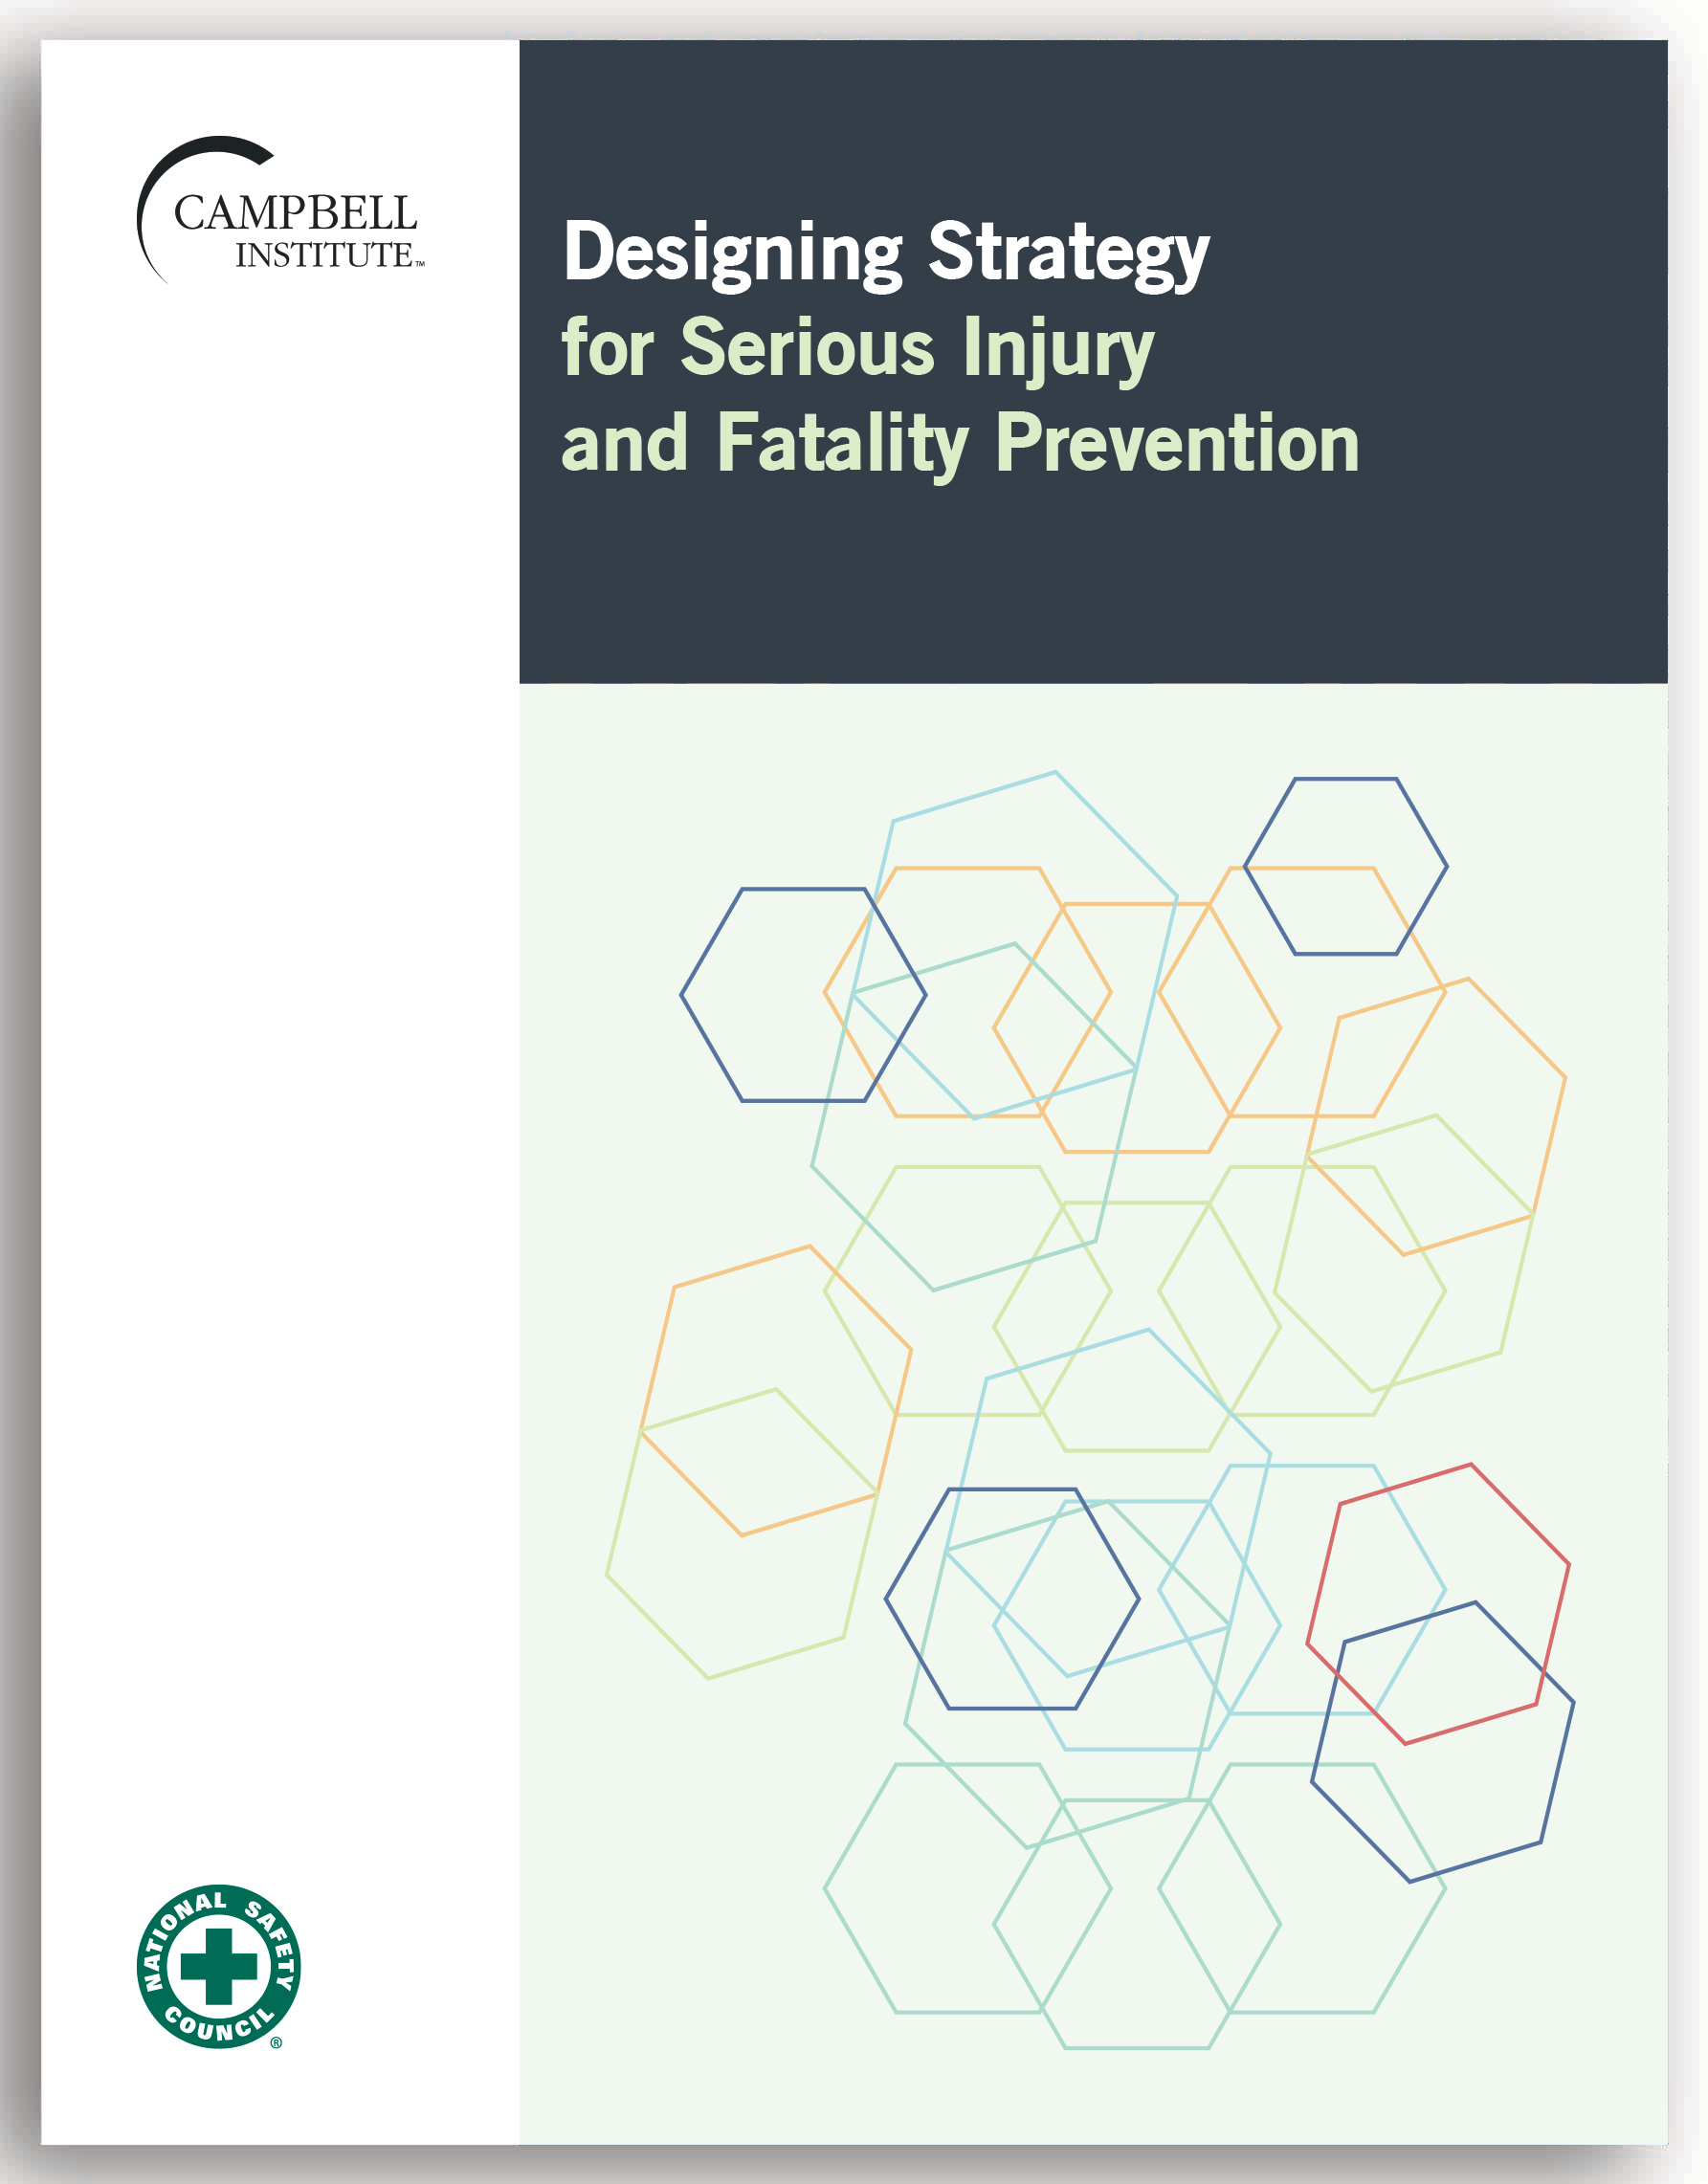 Designing Strategy for Serious Injury and Fatality Prevention